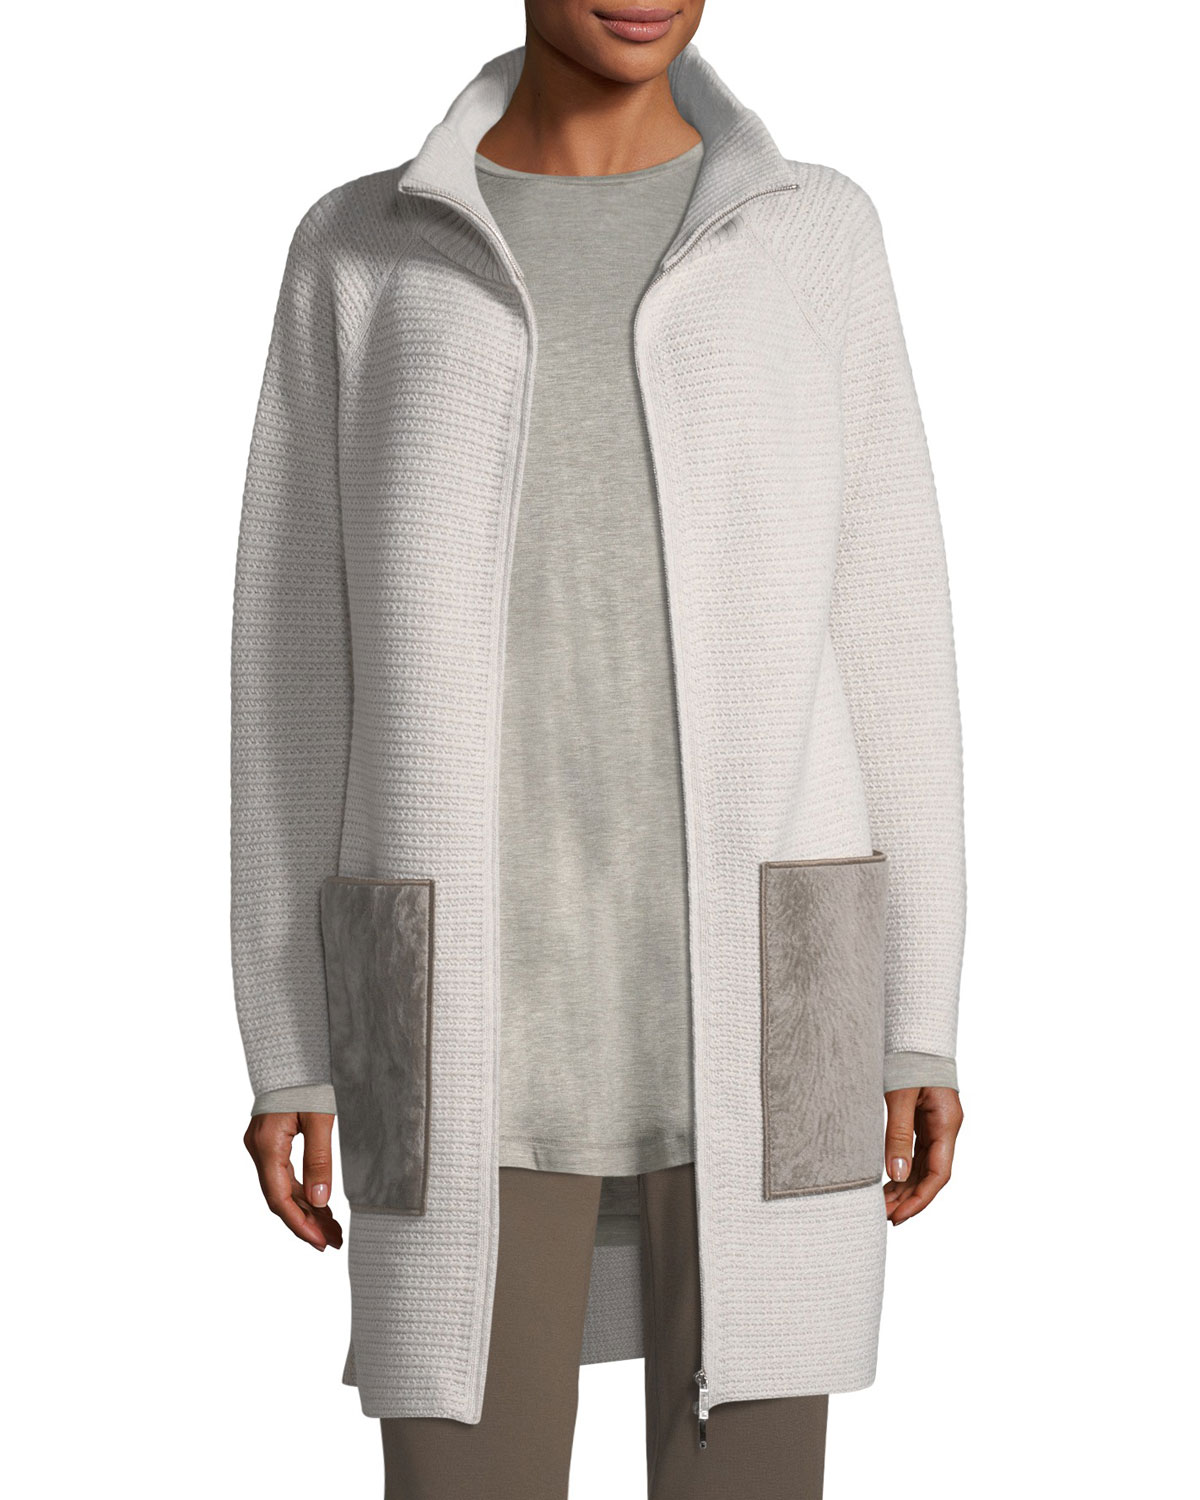 Lafayette 148 OVERSIZED KNIT CARDIGAN COAT W/ SHEARLING POCKETS